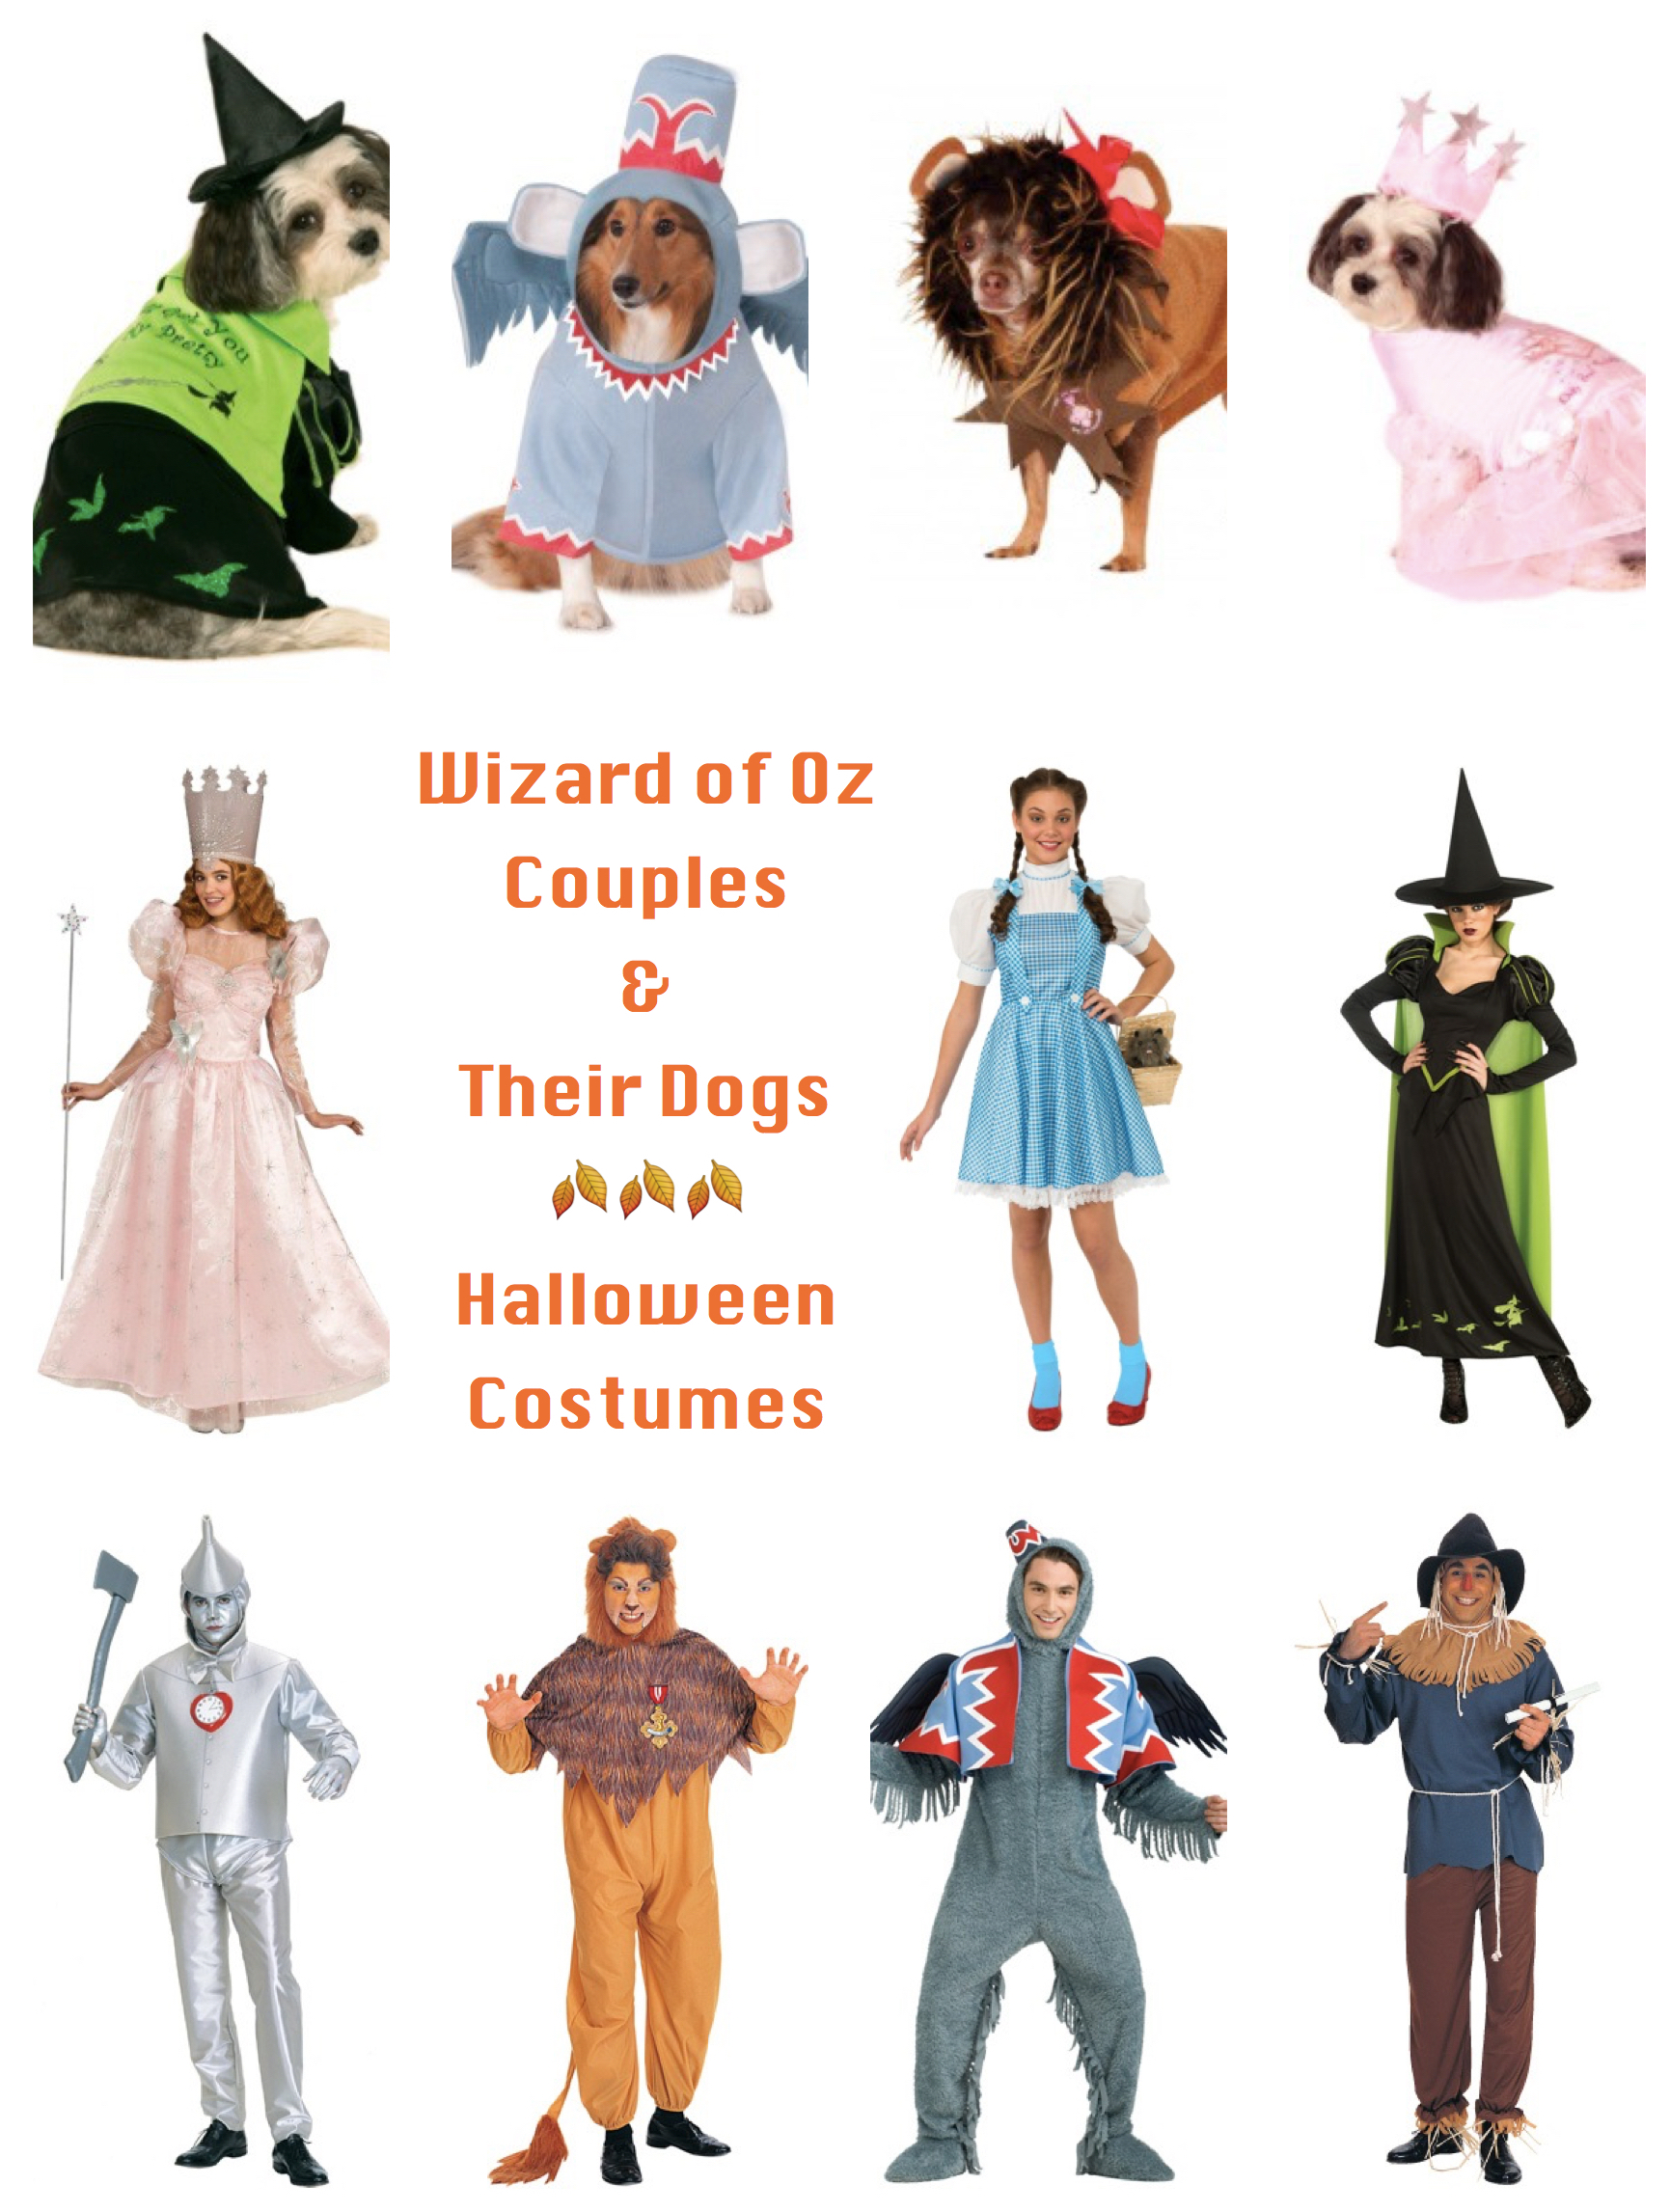 Wizard of Oz Couples Costumes and Their Dogs Costumes